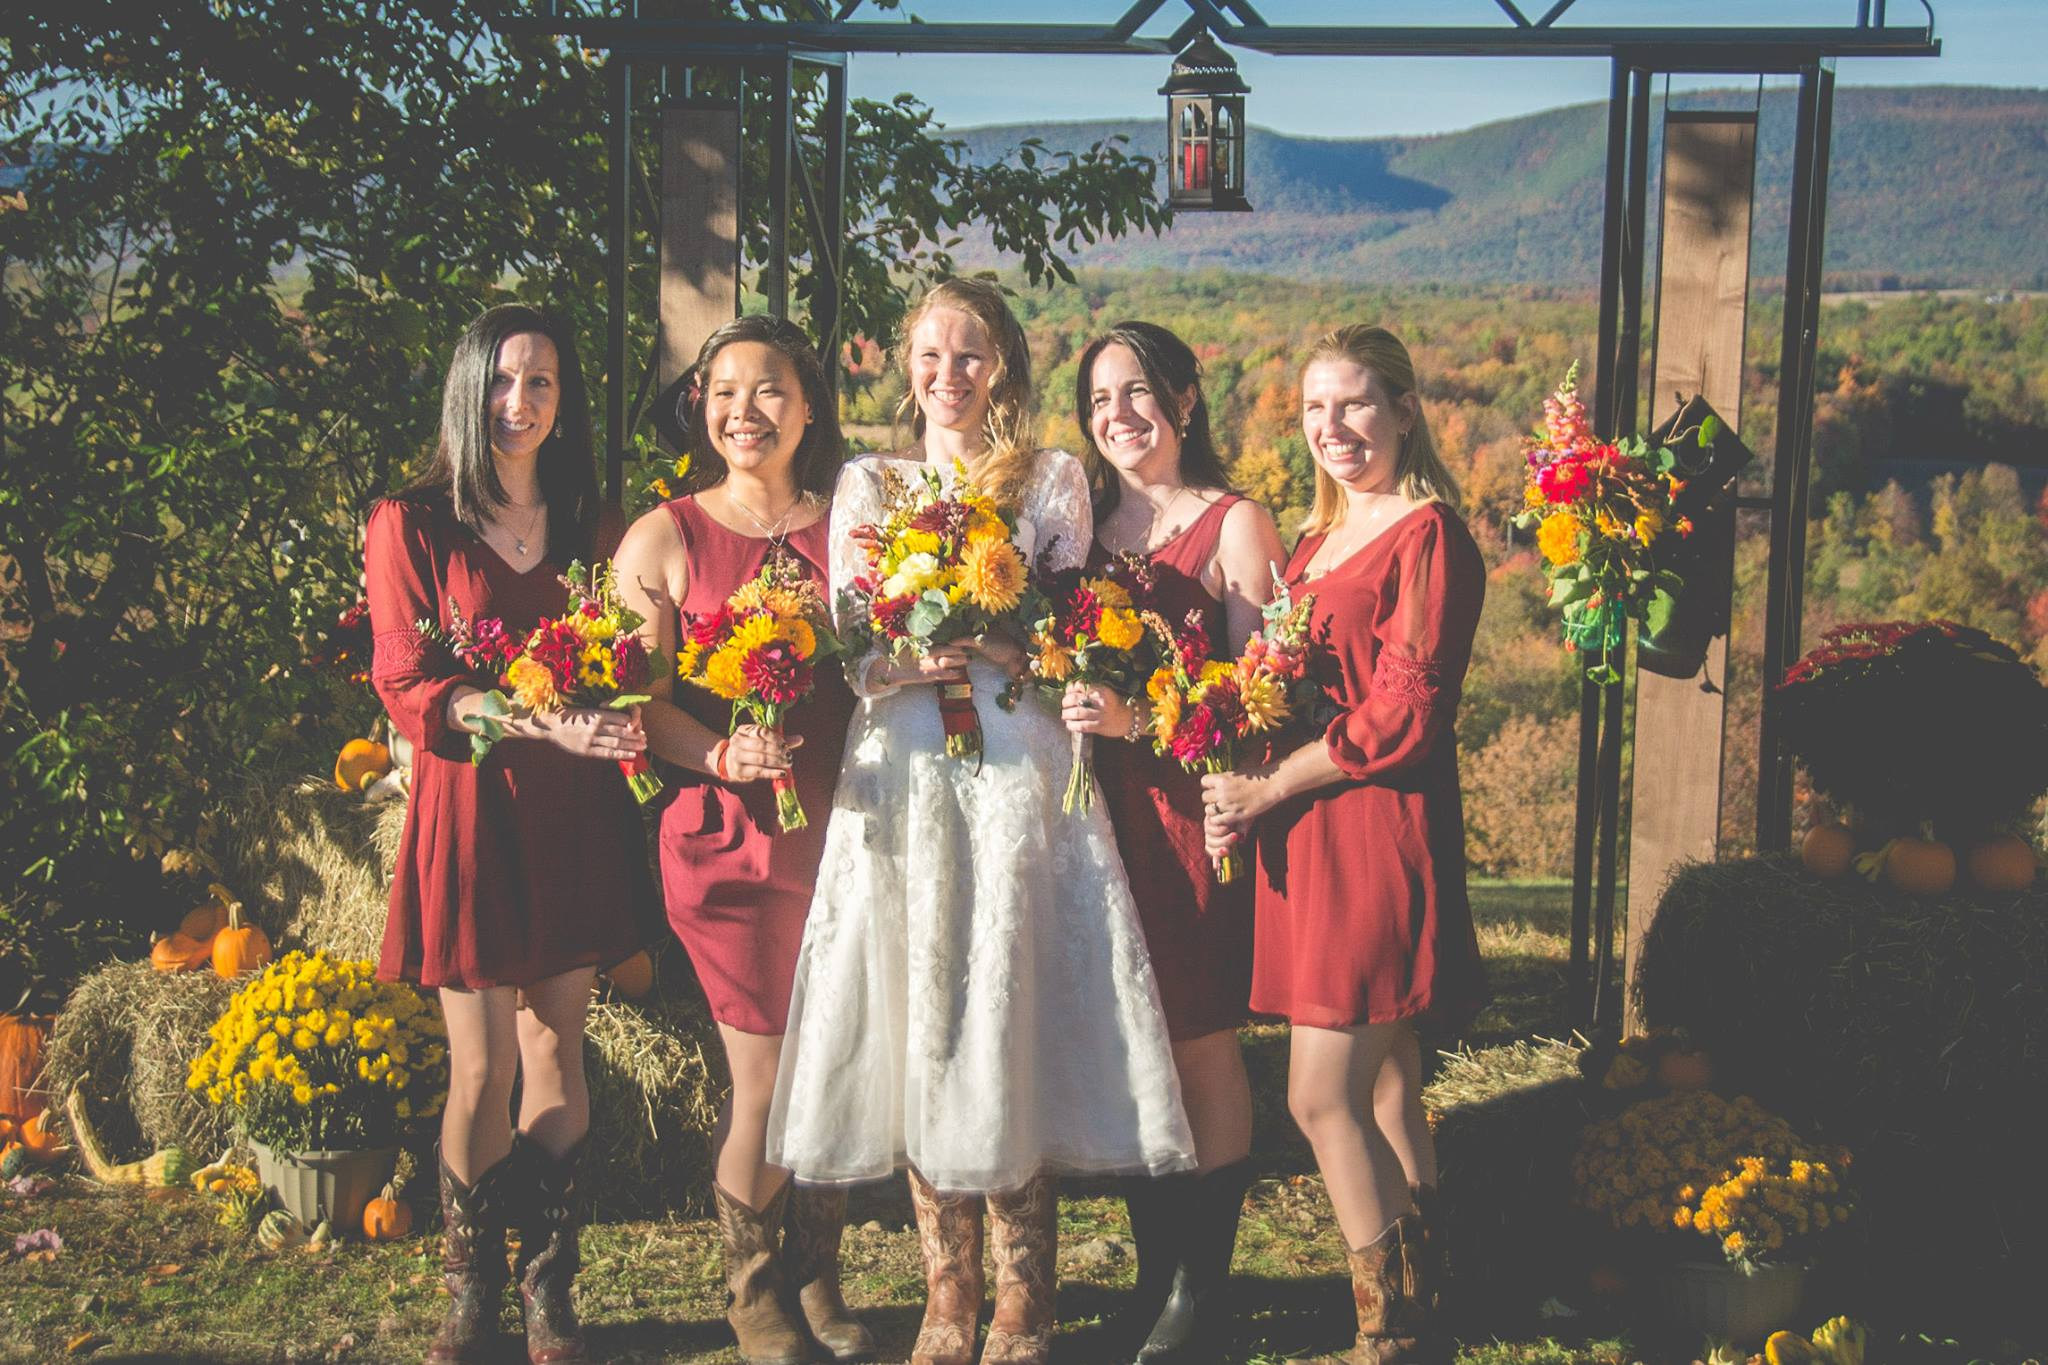 Bridal party flowers - October wedding